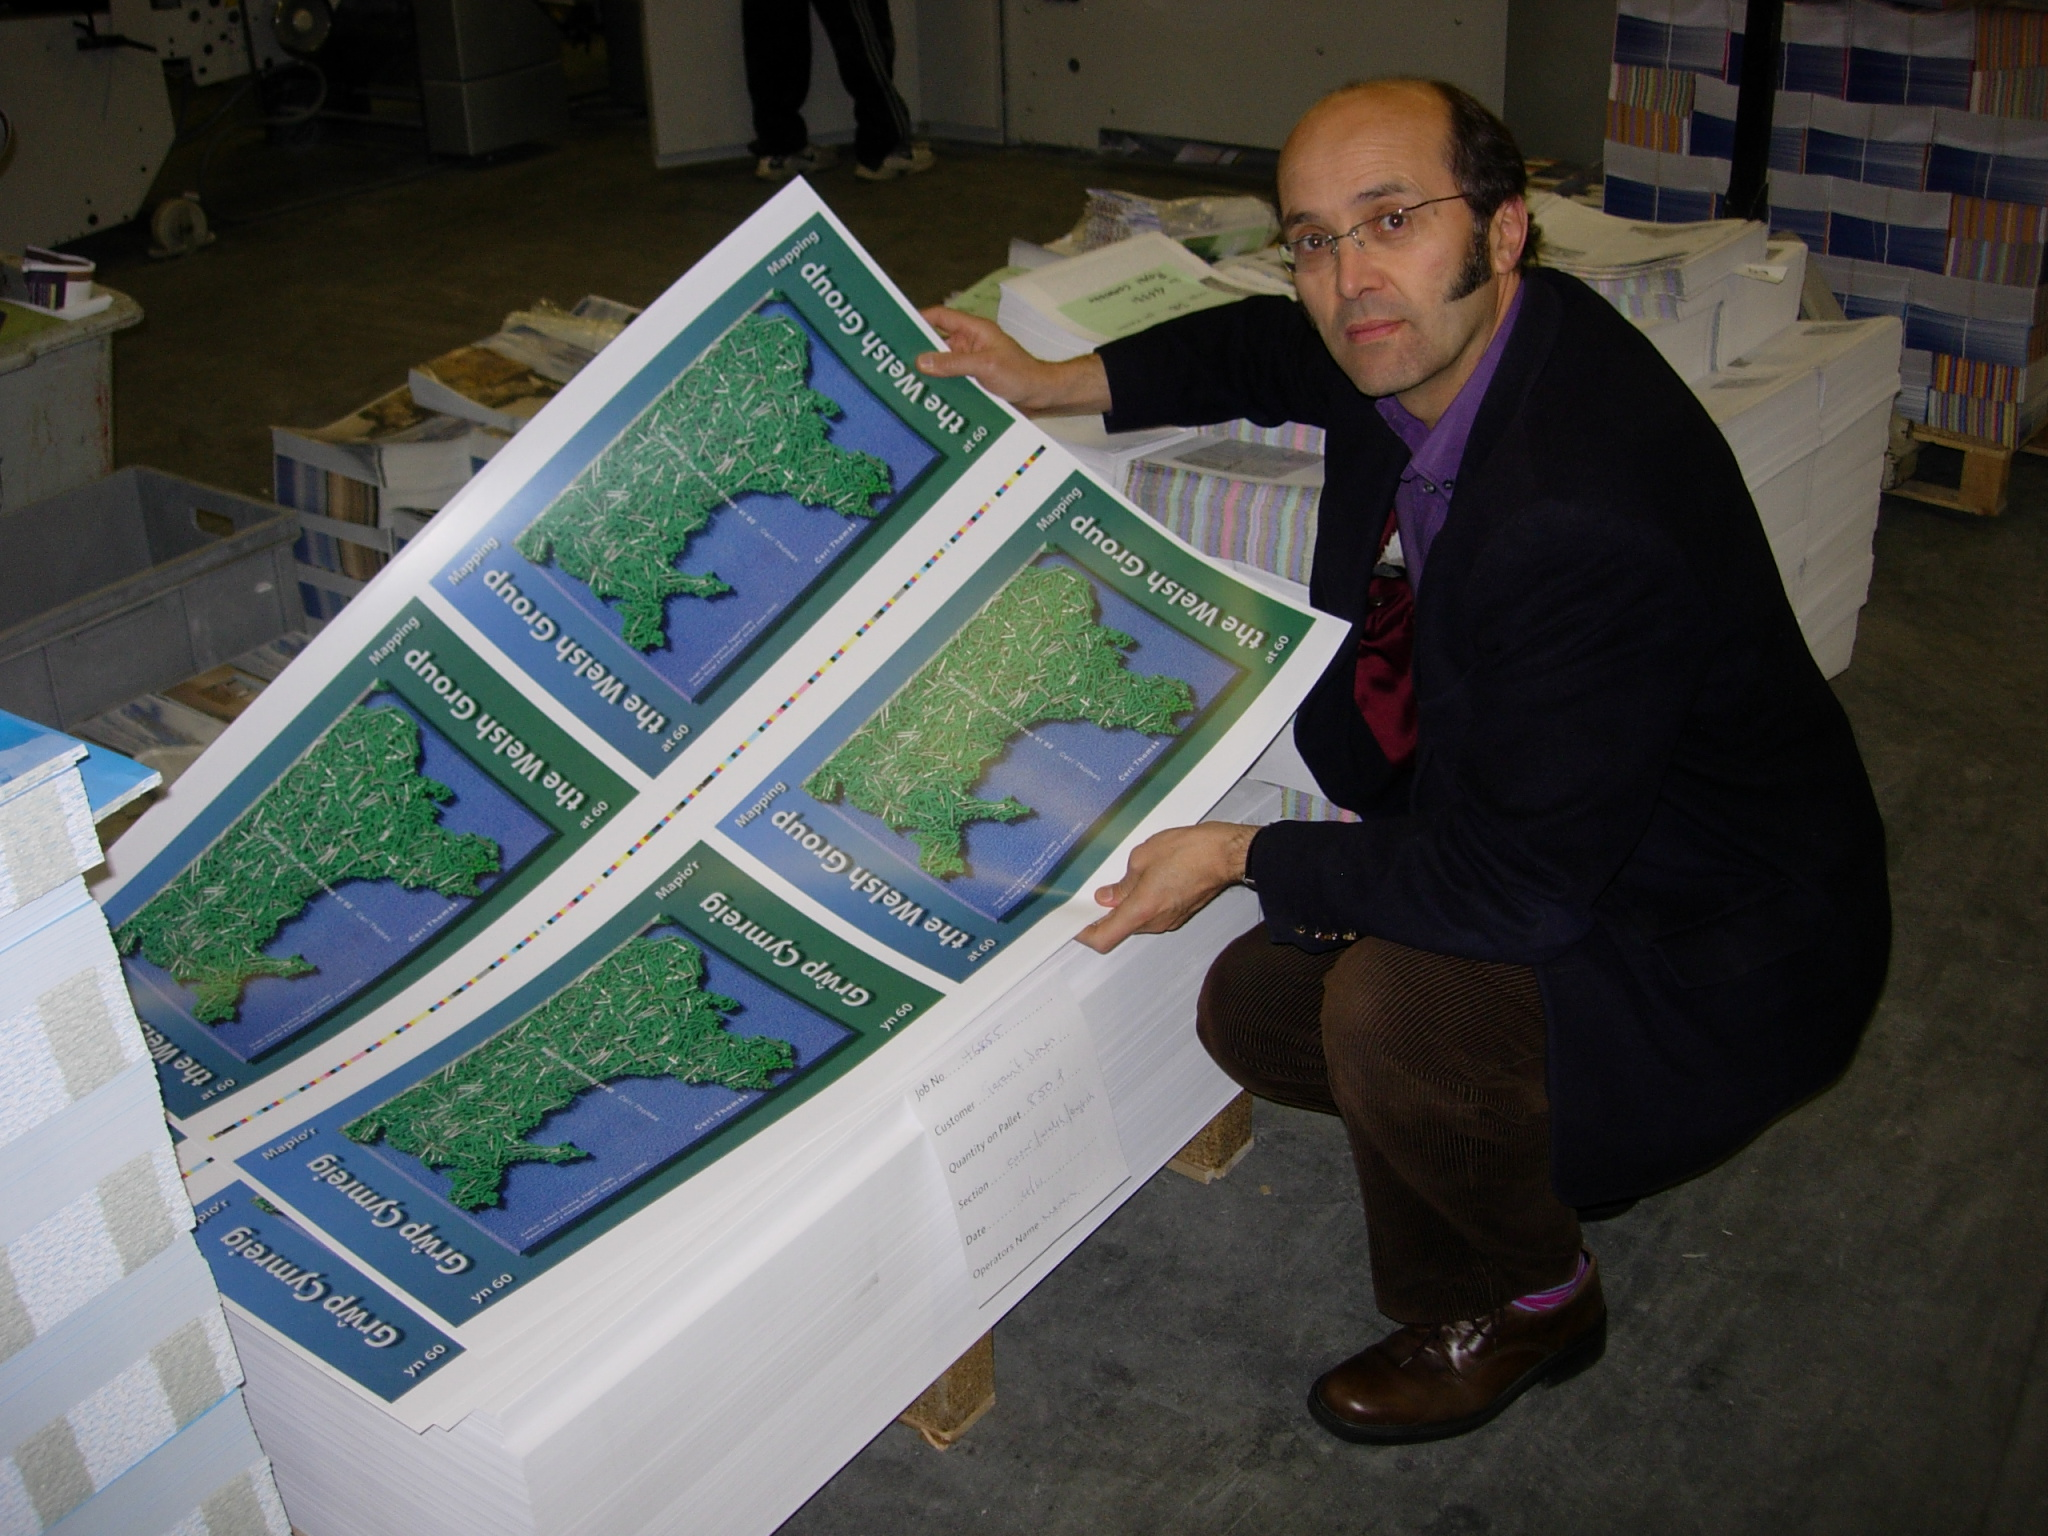 Ceri Thomas with the proofs of 'Mapping the Welsh Group at 60' publication, Clydach Vale, 2008